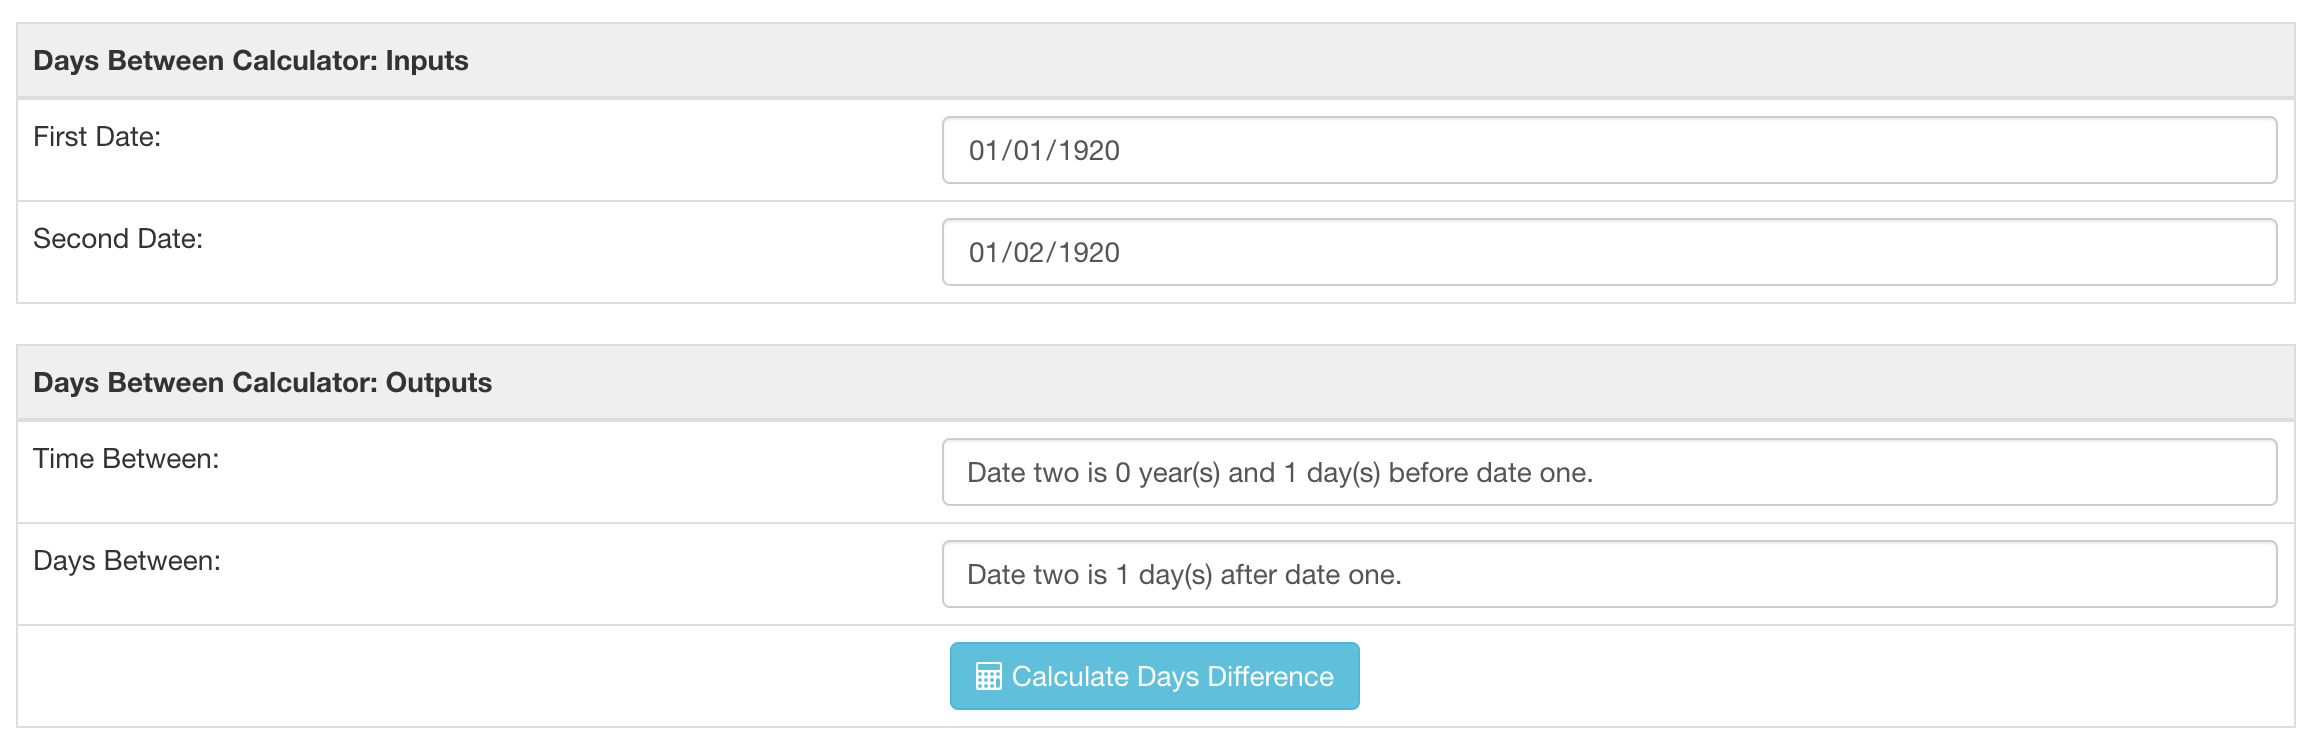 Days between calculator result for a date and the very next day.